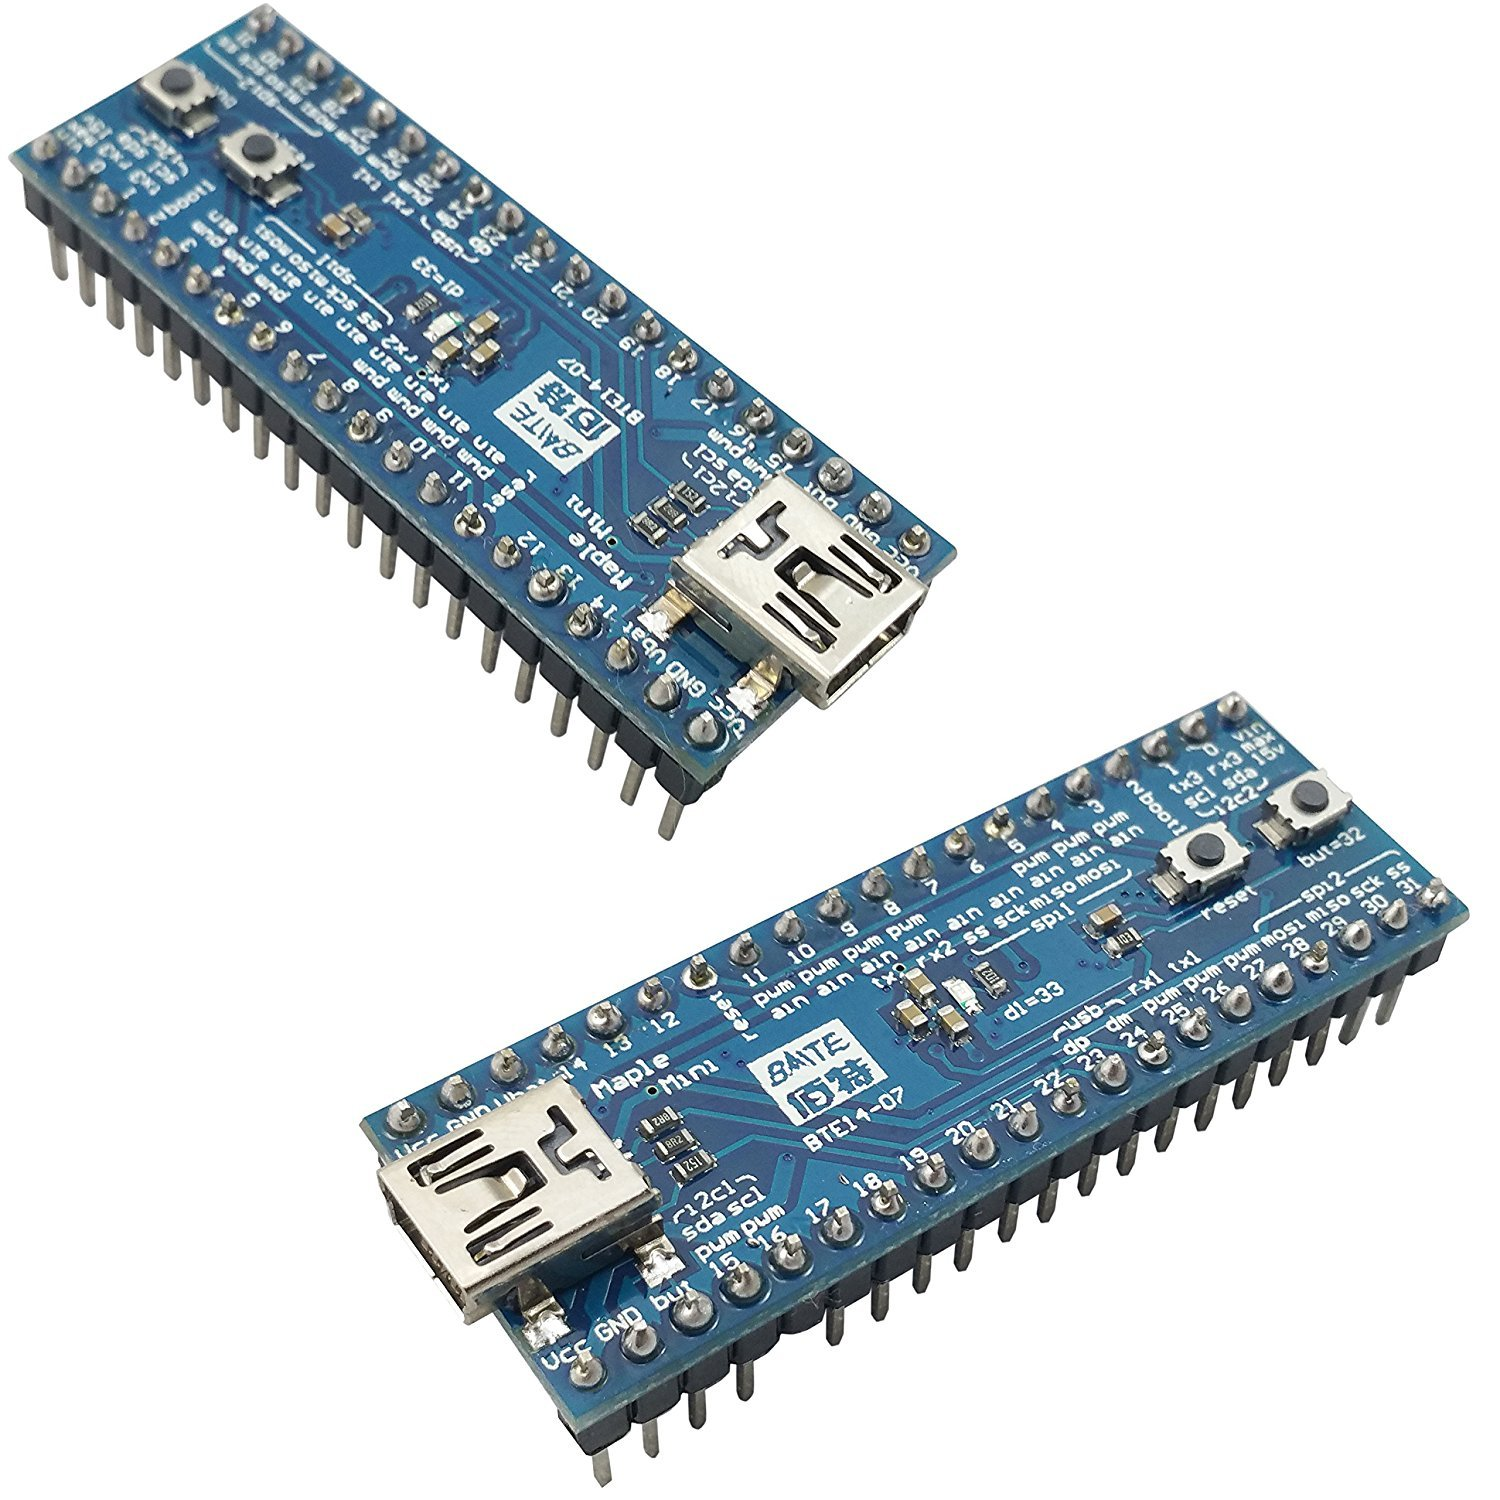 [initeq] 2-Pack Maple Mini STM32F103CBT6 USB-Programmable Development Board  ARM STM32 w/Arduino IDE Compatibility Blue Pill++